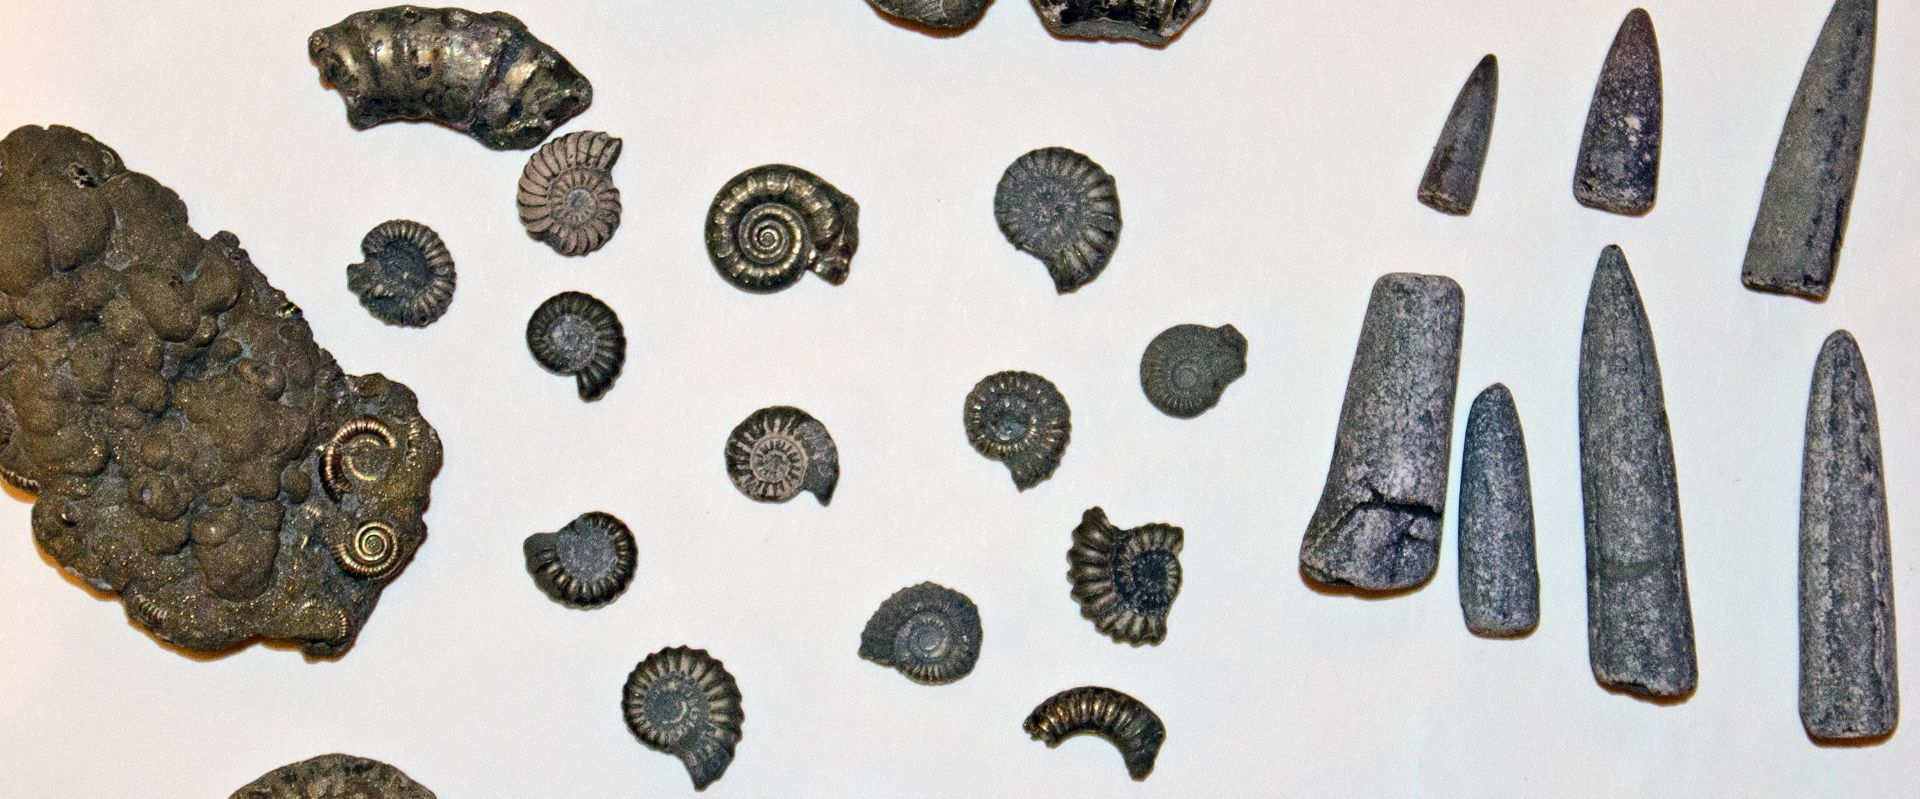 Fossils found on Charmouth Beach